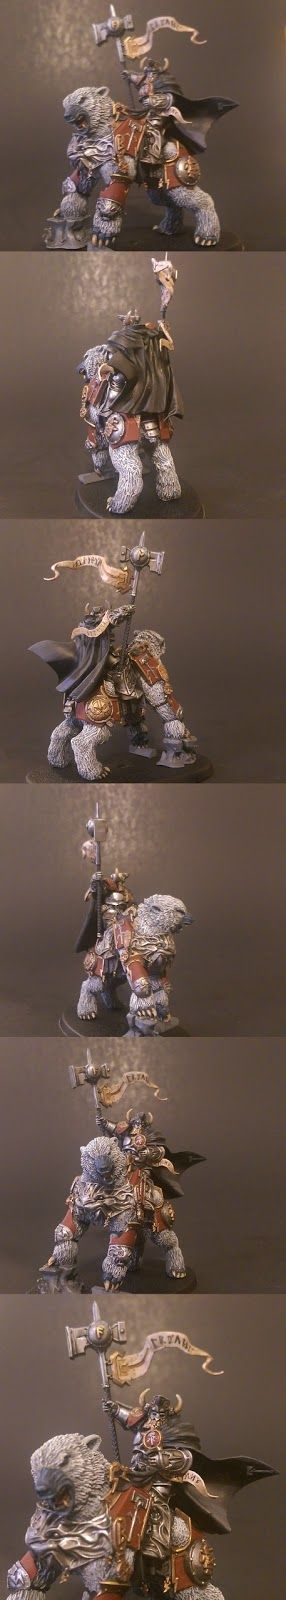 Bits Addiction: Forgesworn Eternals - Lord-Celestant on Dire Bear (Finished!)